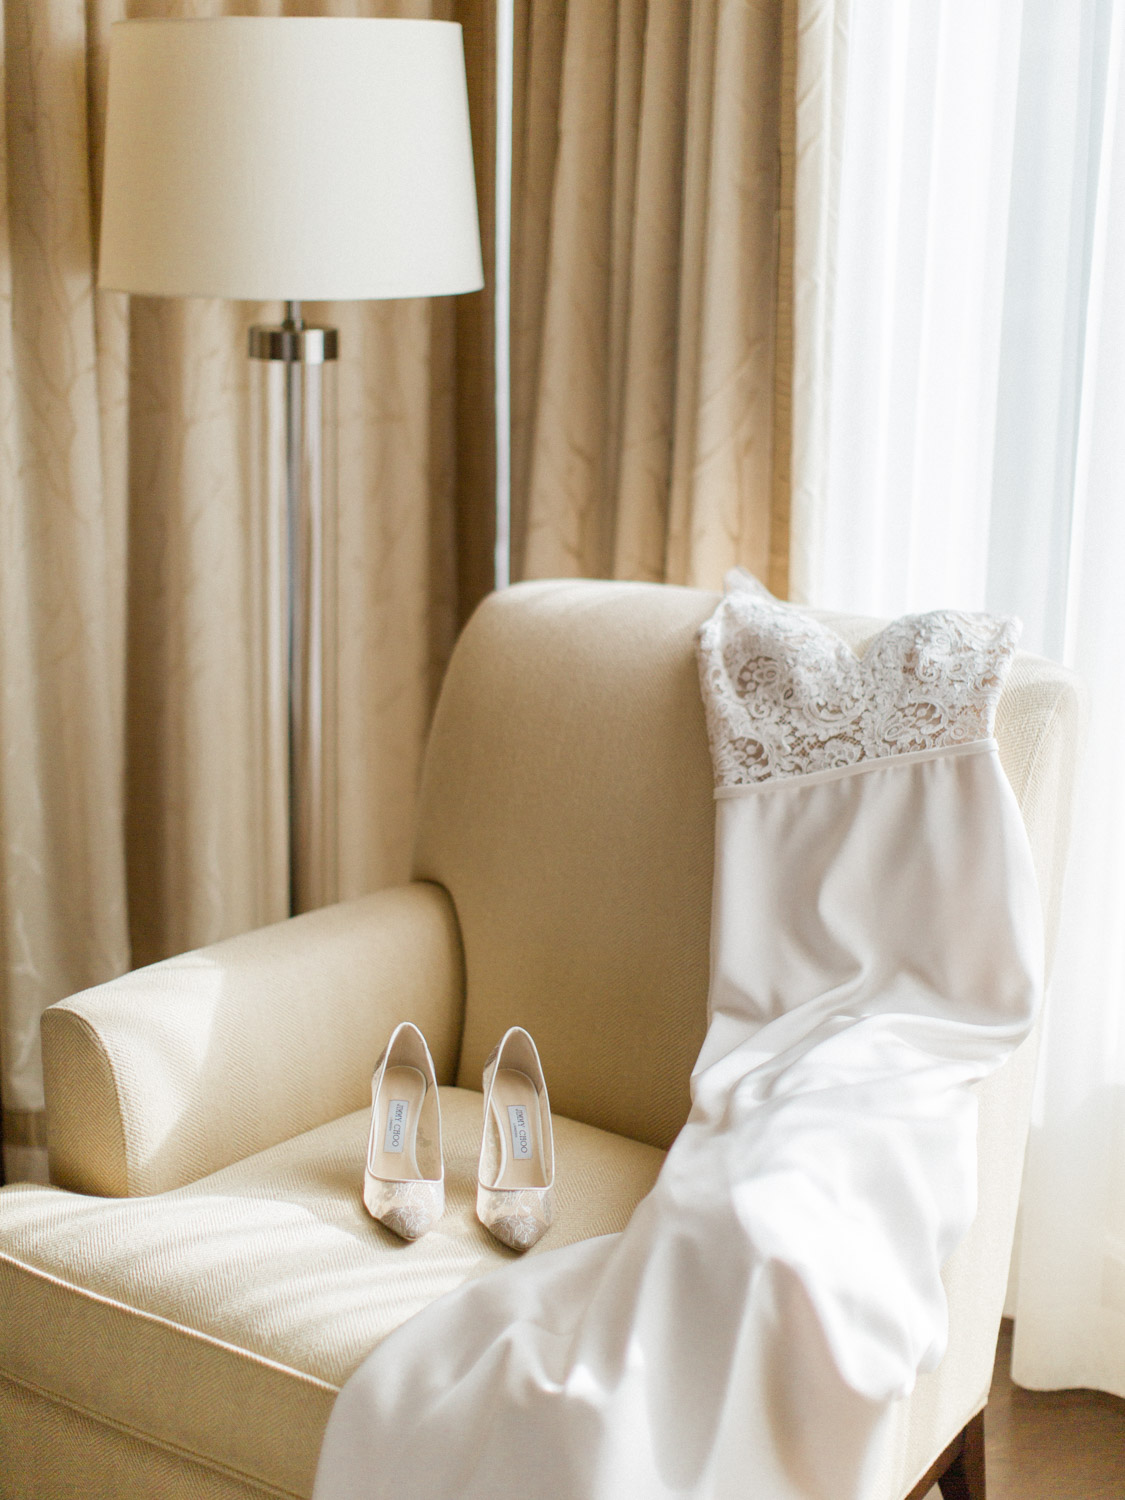 -	Fine art details of shoes, dress, and perfume from fall wedding at the Ritz Carlton, downtown Toronto.  Captured by Toronto wedding photographer Corynn Fowler Photography.